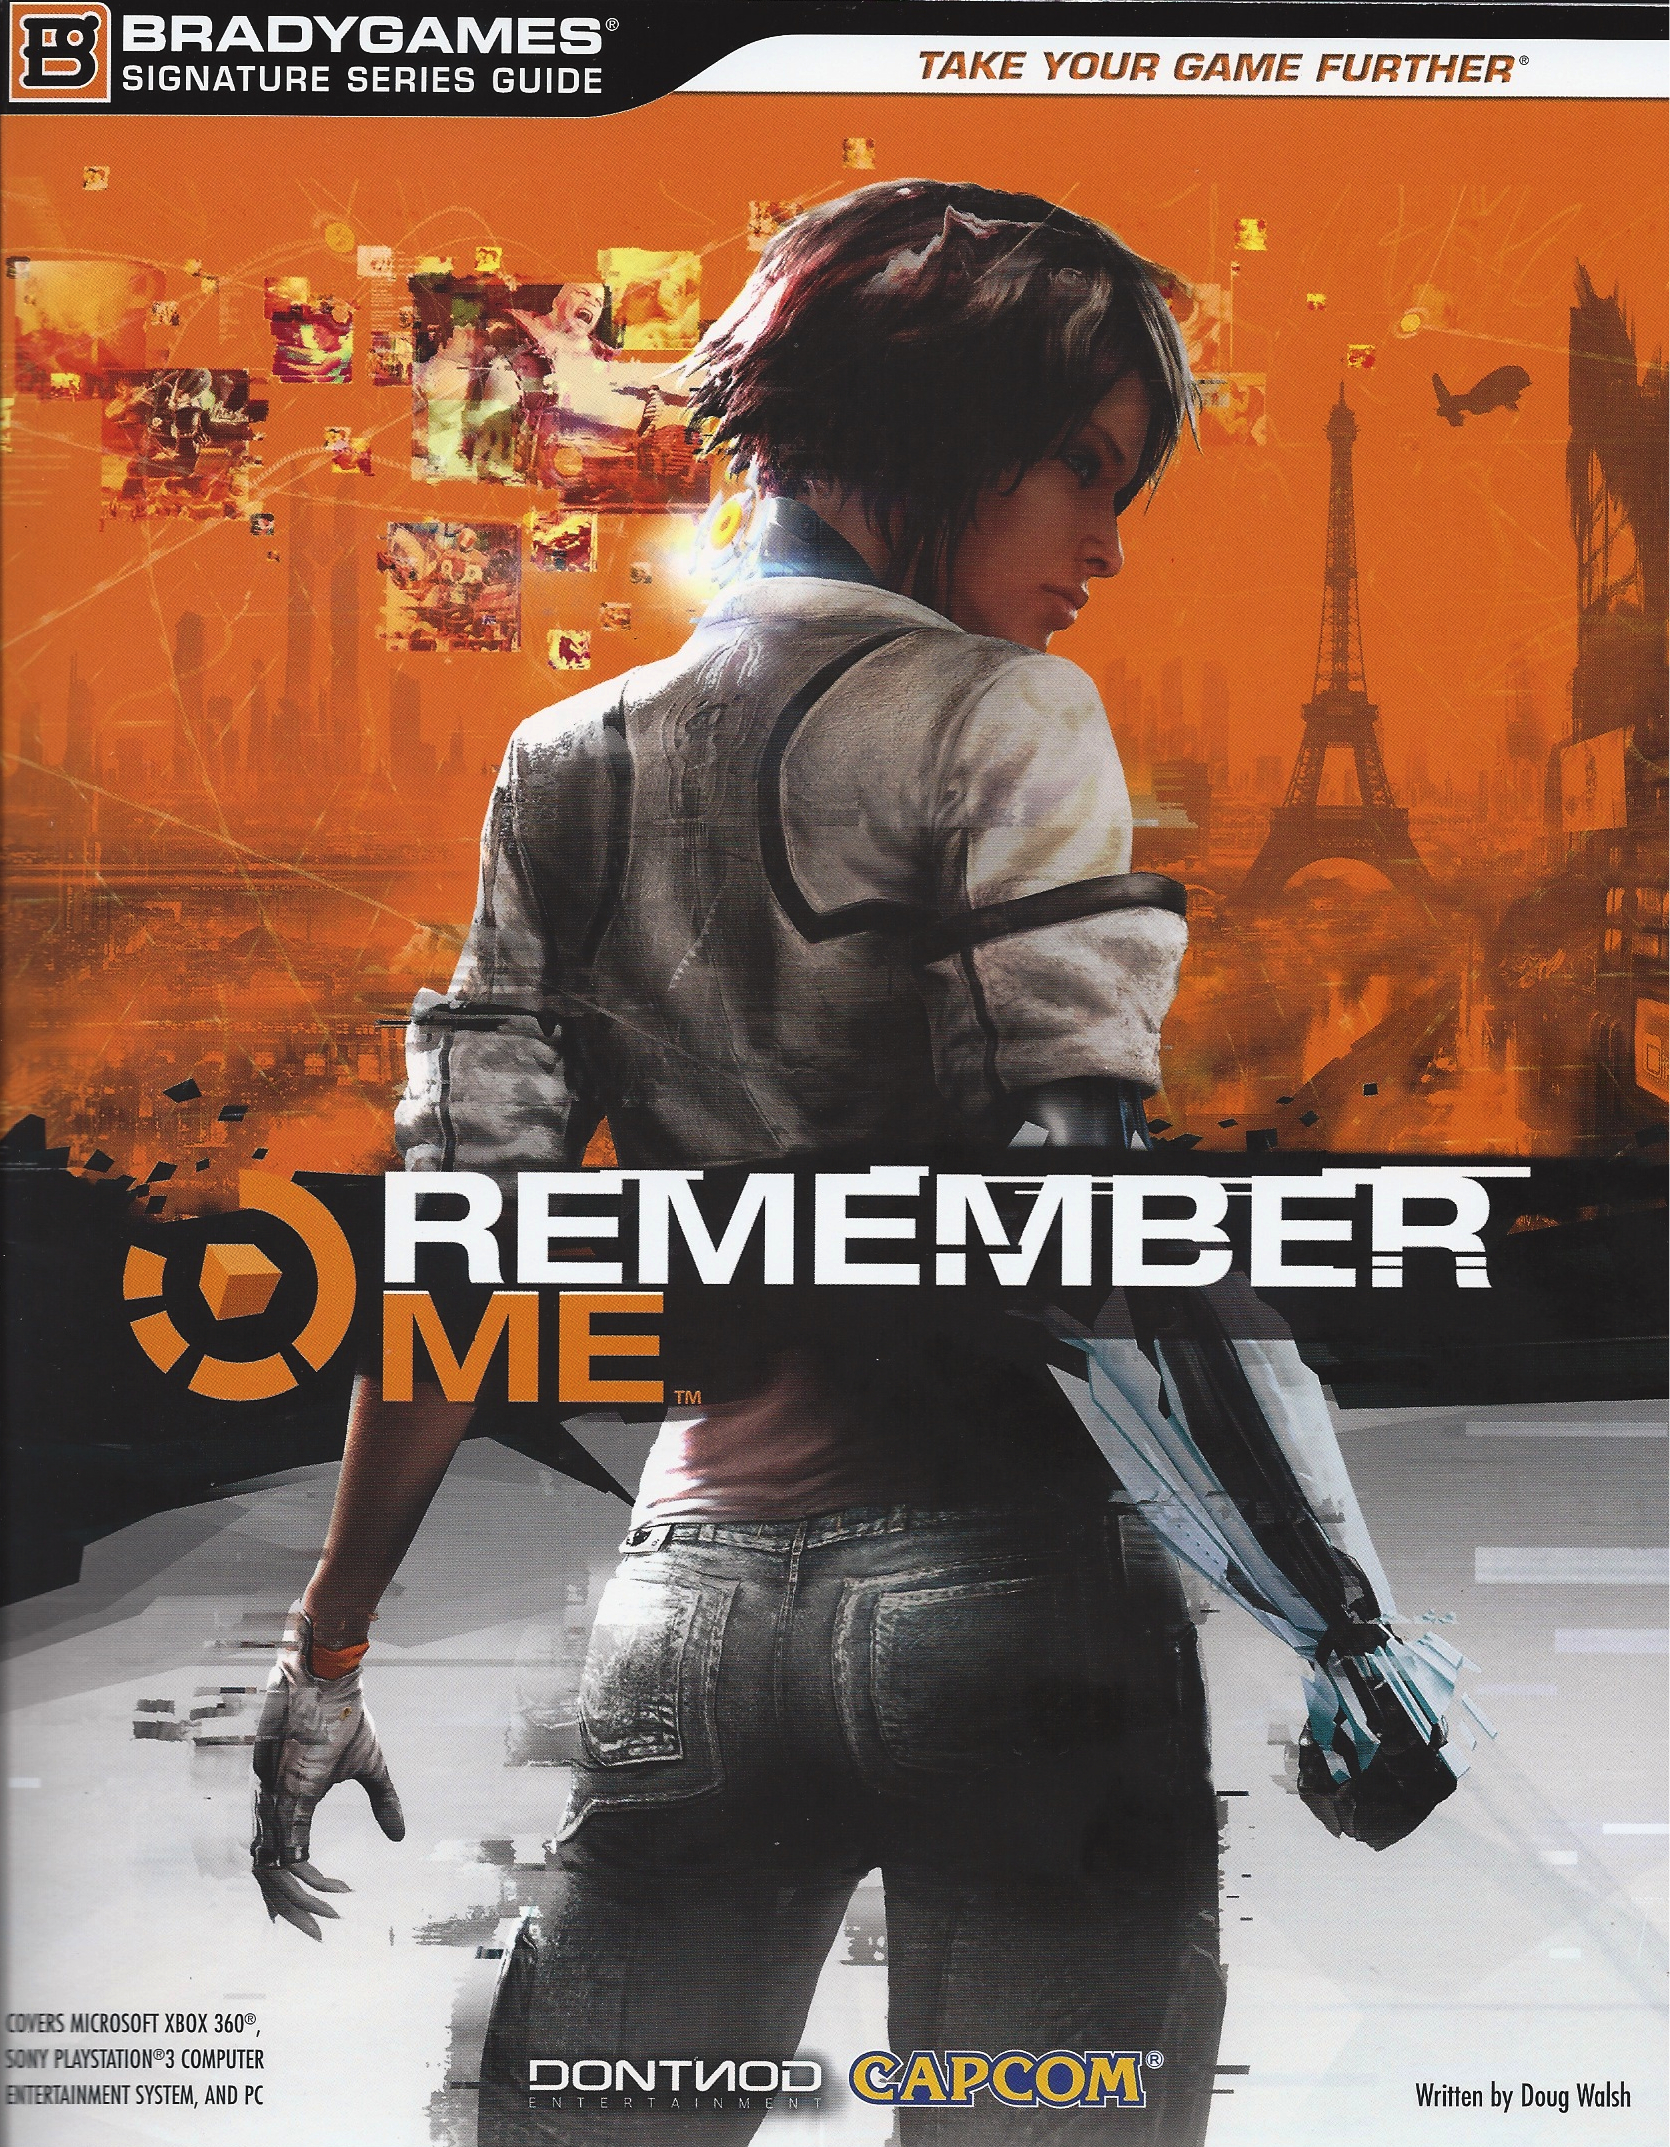 Remember Me strategy guide